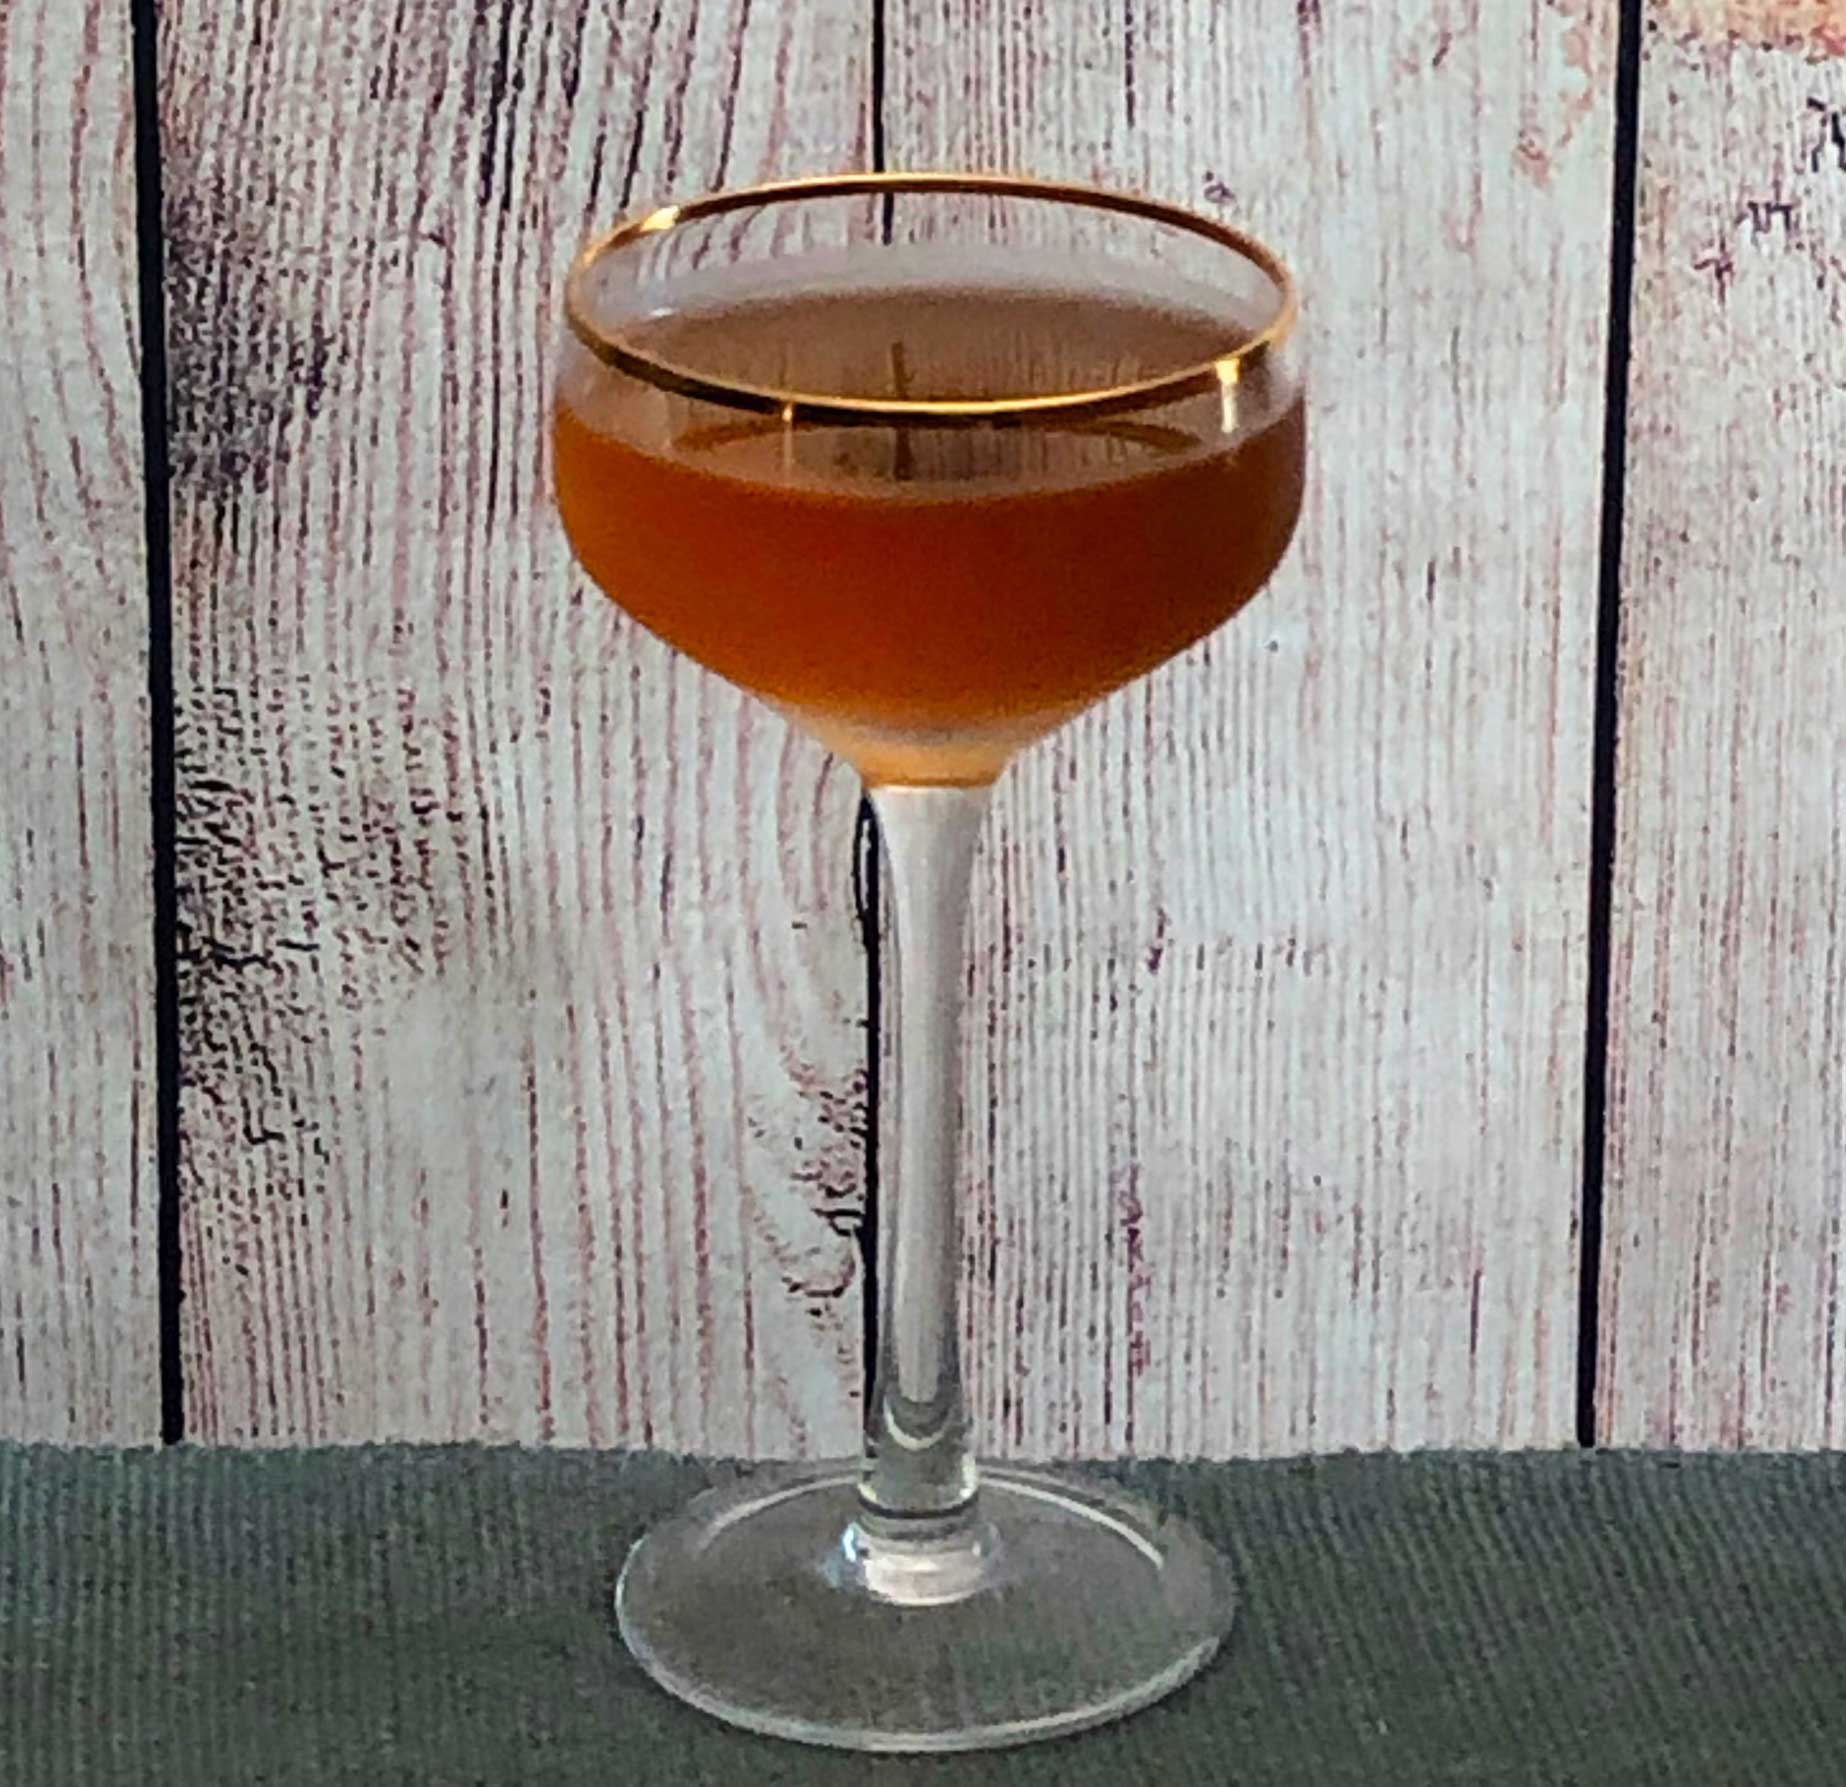 """An example of the Club Cocktail, the mixed drink (cocktail), by The Only William, """"Flowing Bowl"""", featuring Hayman's Old Tom Gin, Dolin Rouge Vermouth de Chambéry, simple syrup or gum syrup, Dolin Génépy le Chamois Liqueur, and orange bitters; photo by Lee Edwards"""